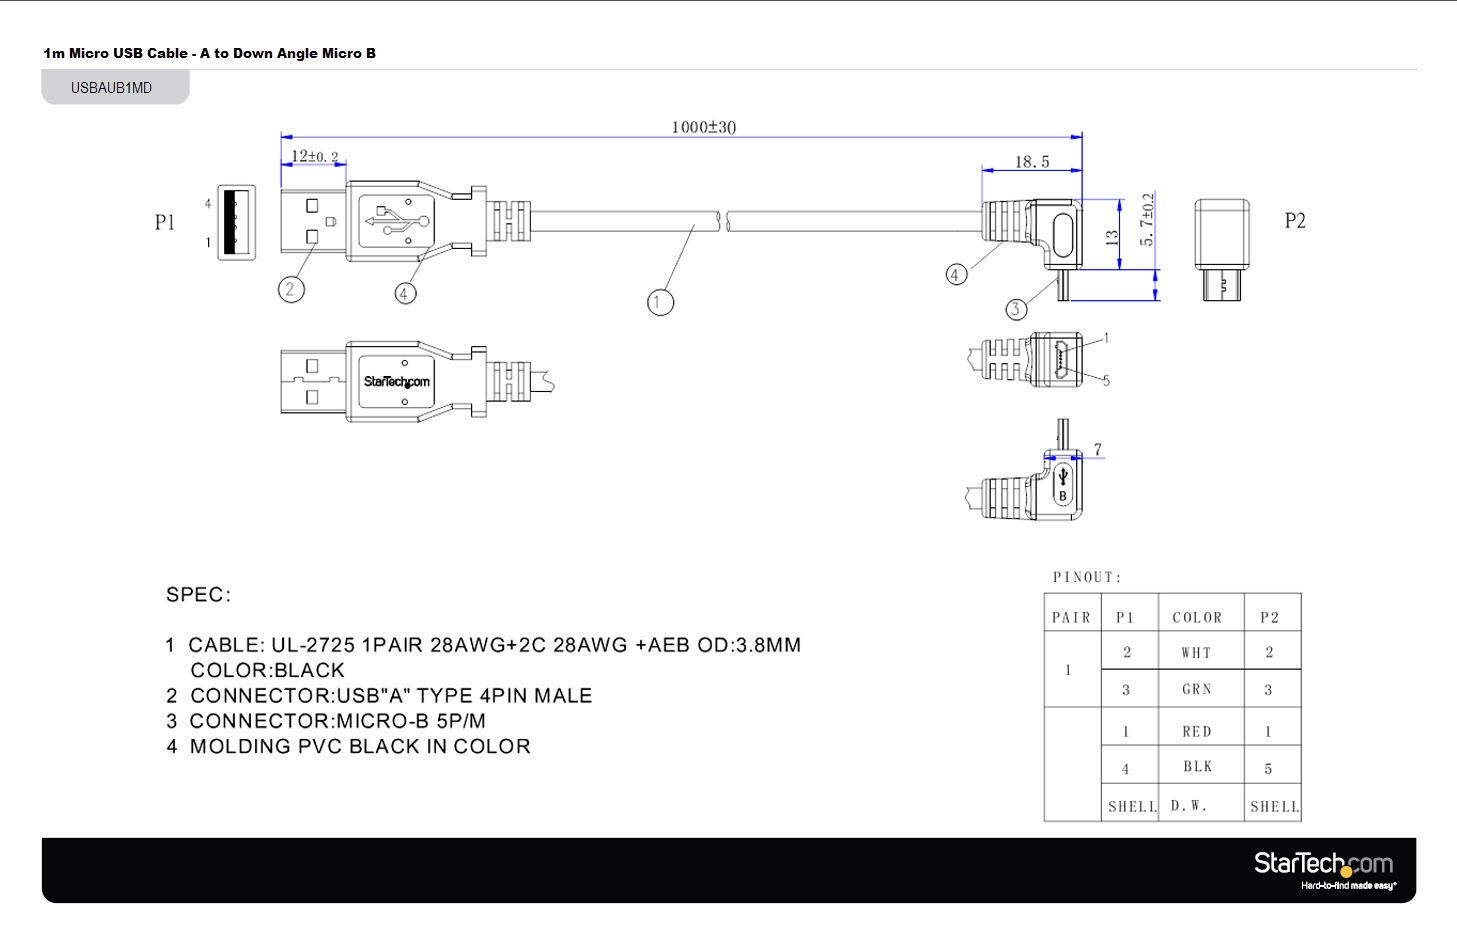 guard dog rb 122 e wiring diagram Download-Usb to Cat5 Wiring Diagram New 1m Usb to Down Angle Micro Usb Cable Apc 19-d